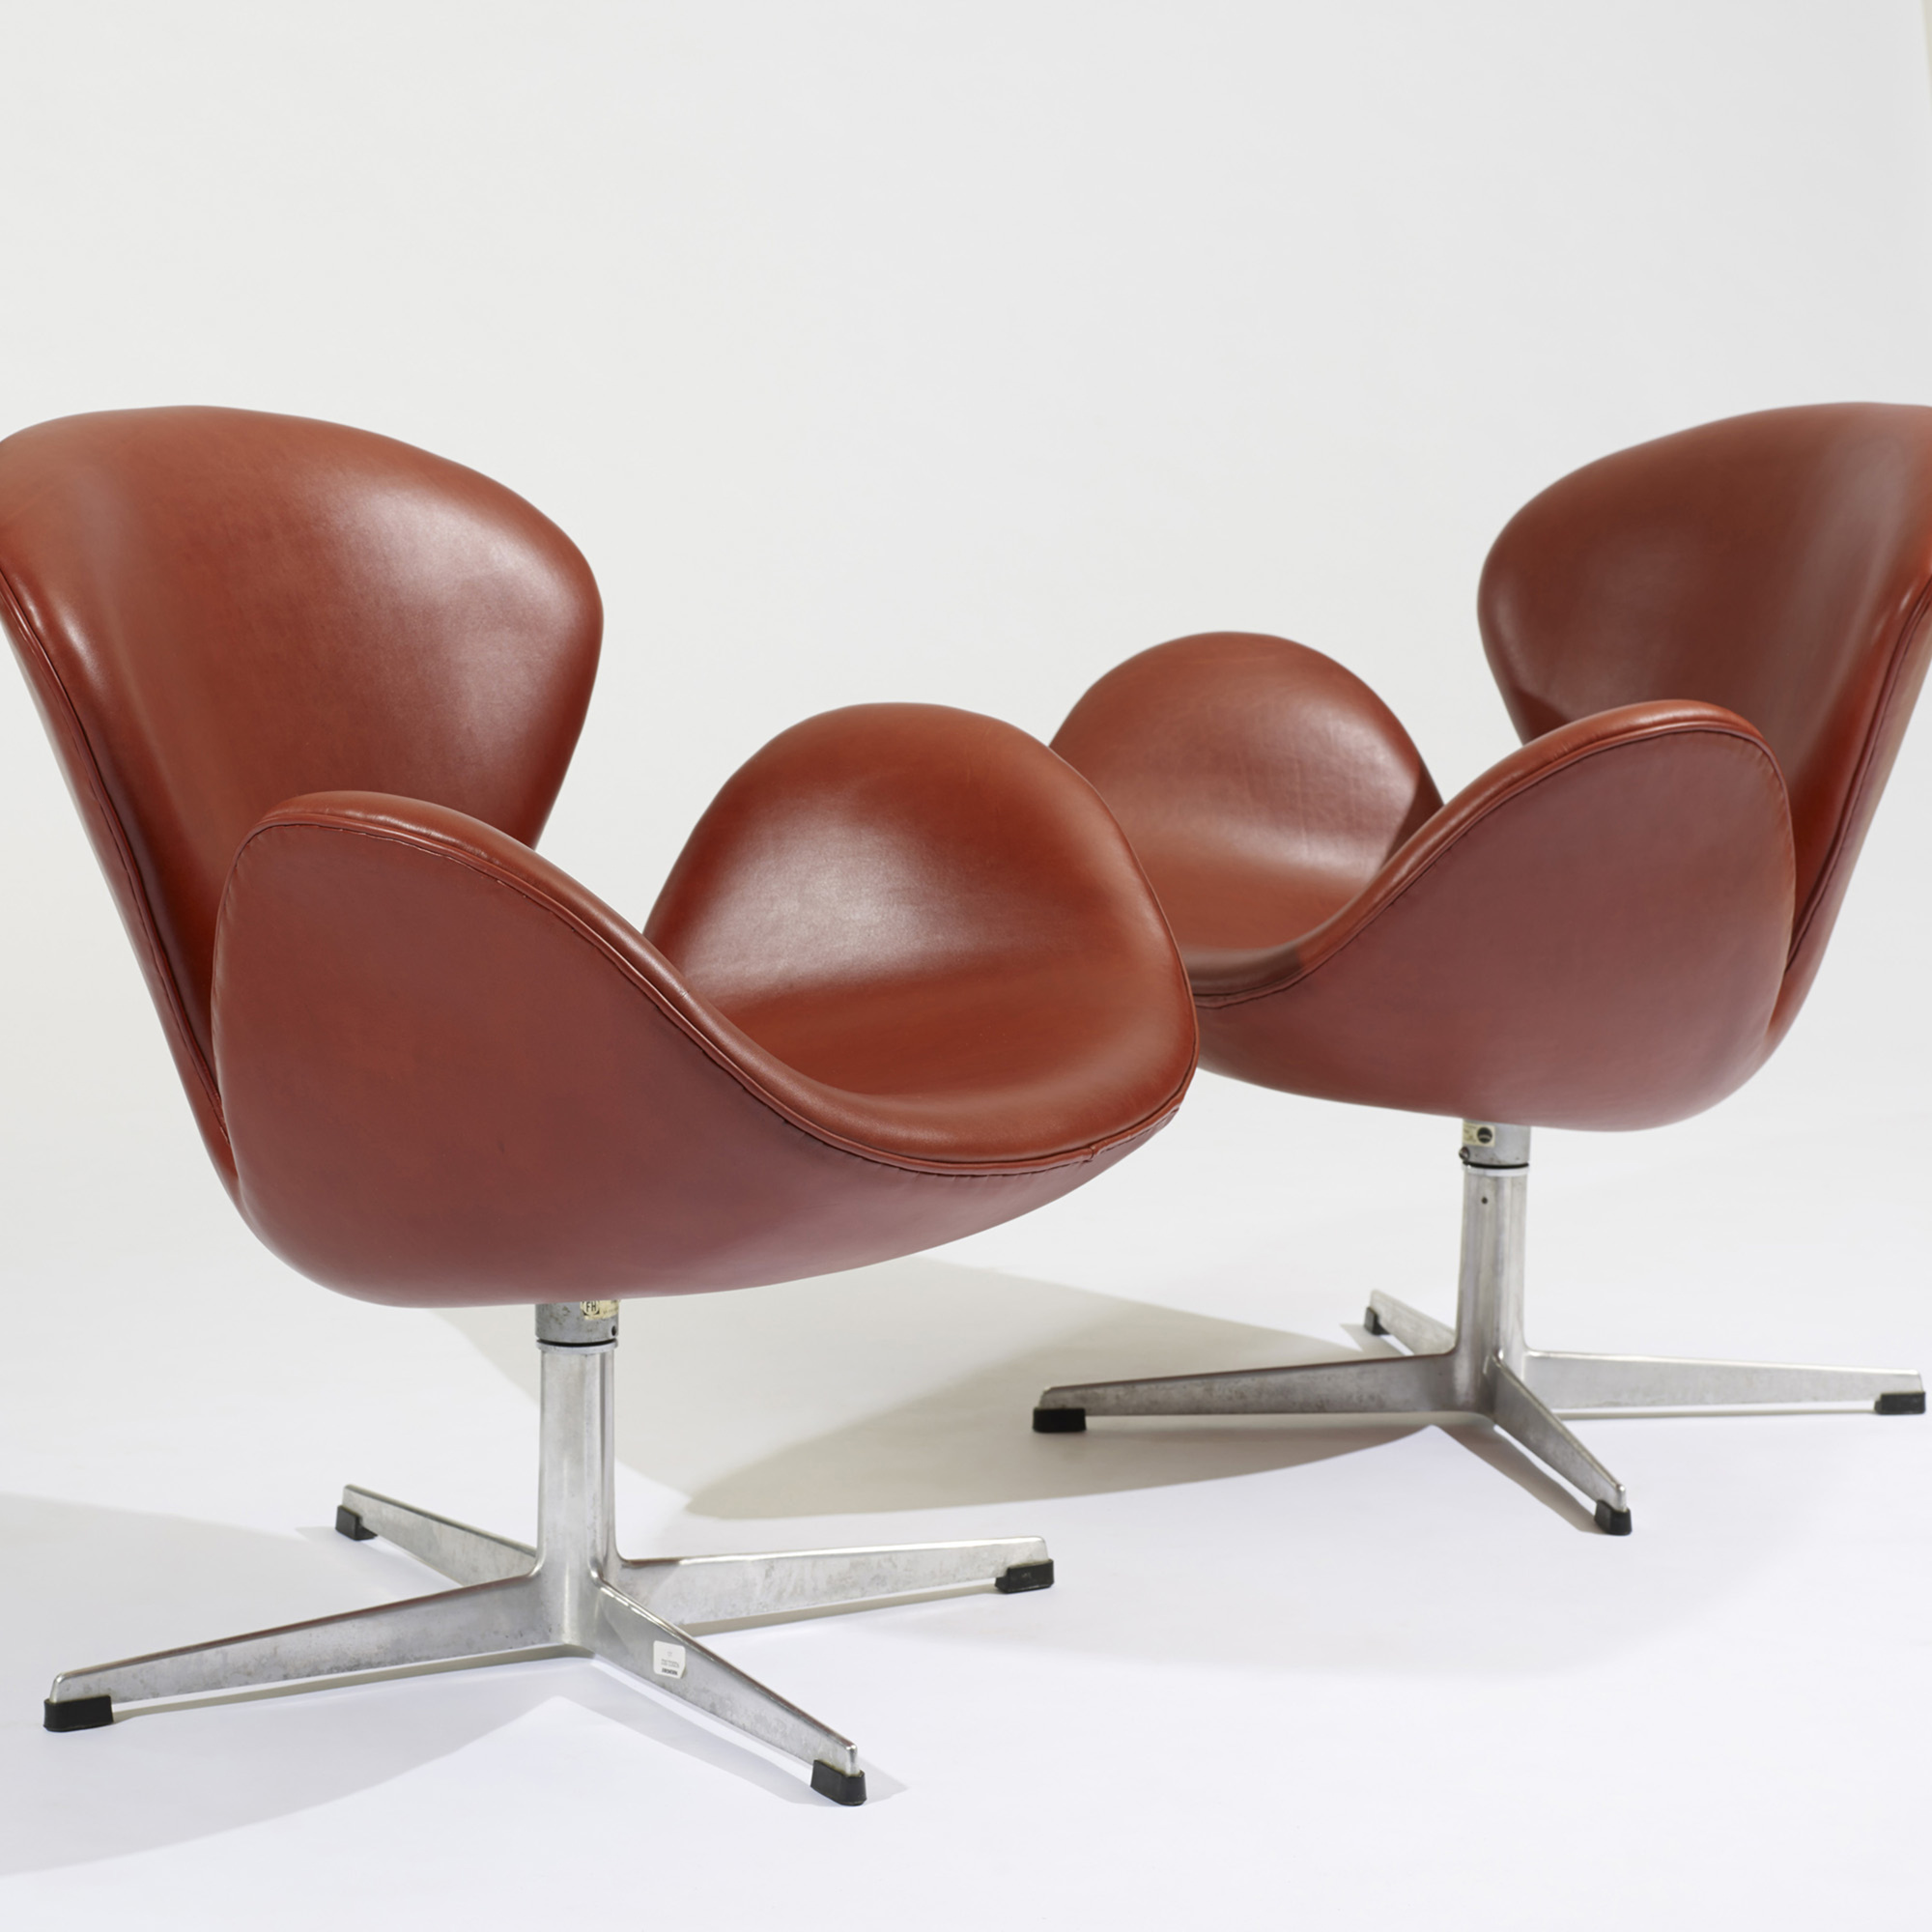 Arne Jacobsen Swan Chair 244: Arne Jacobsen, Swan Chairs, Pair